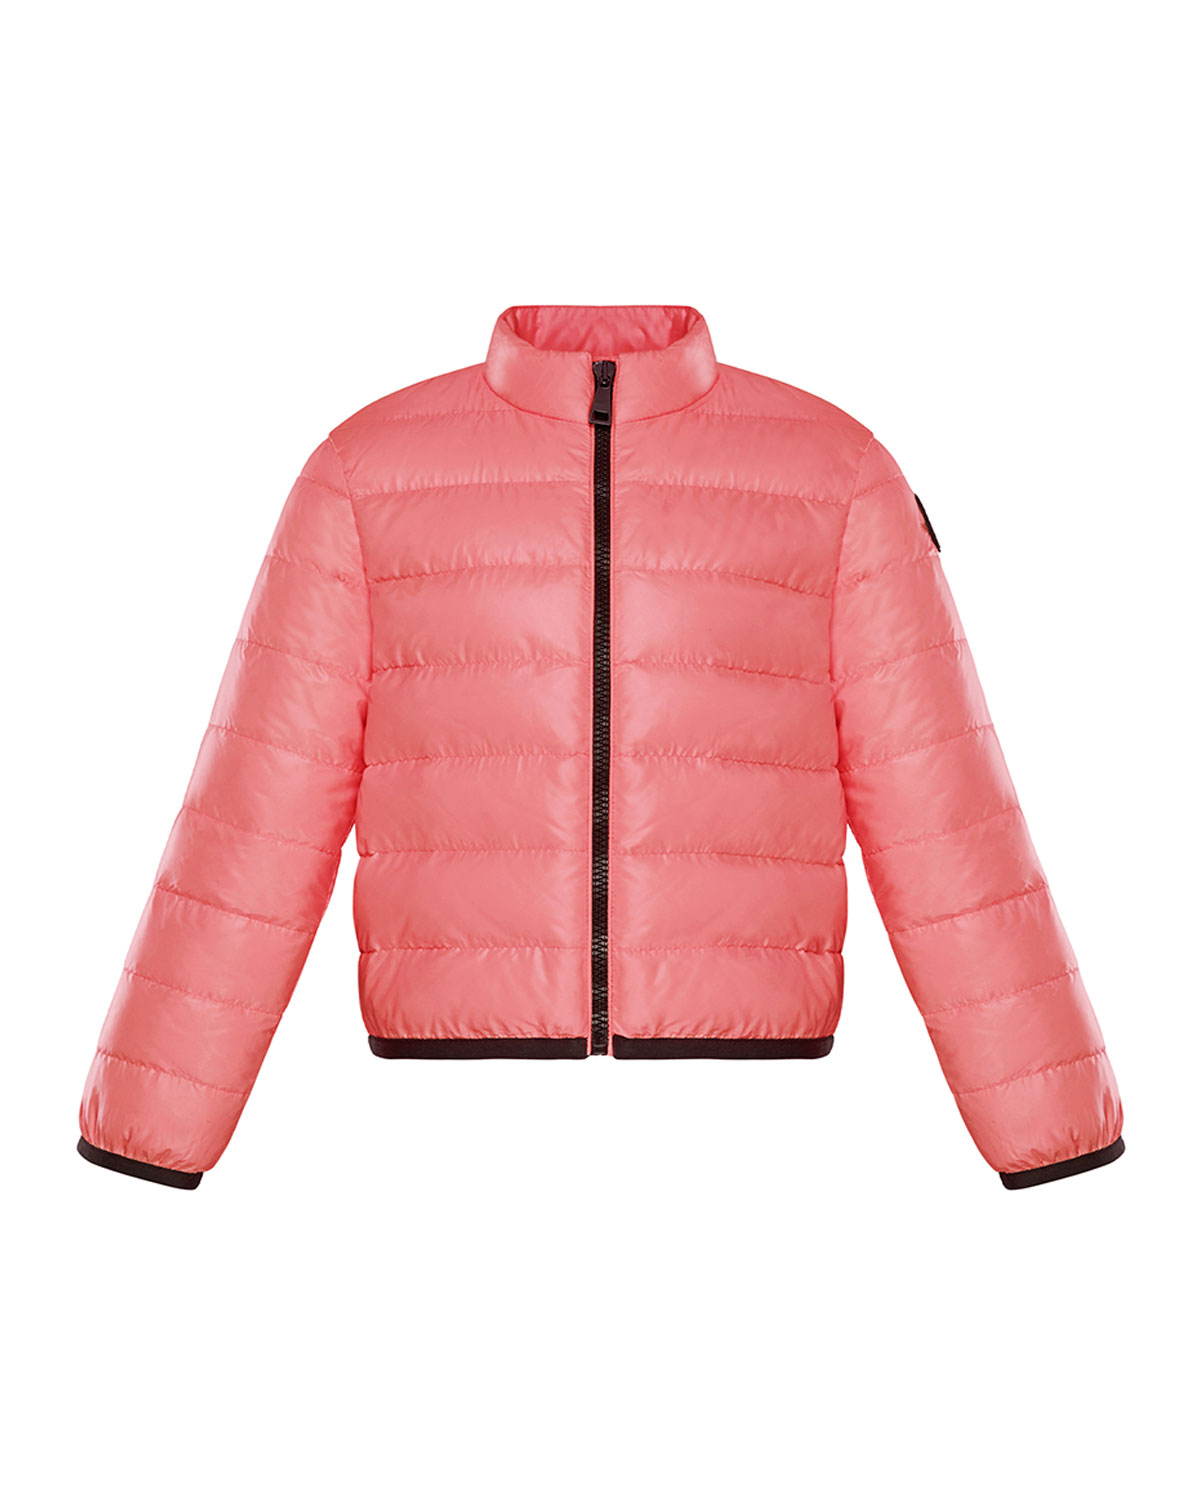 Moncler GIRL'S PHOTINE QUILTED LOGO DOWN JACKET